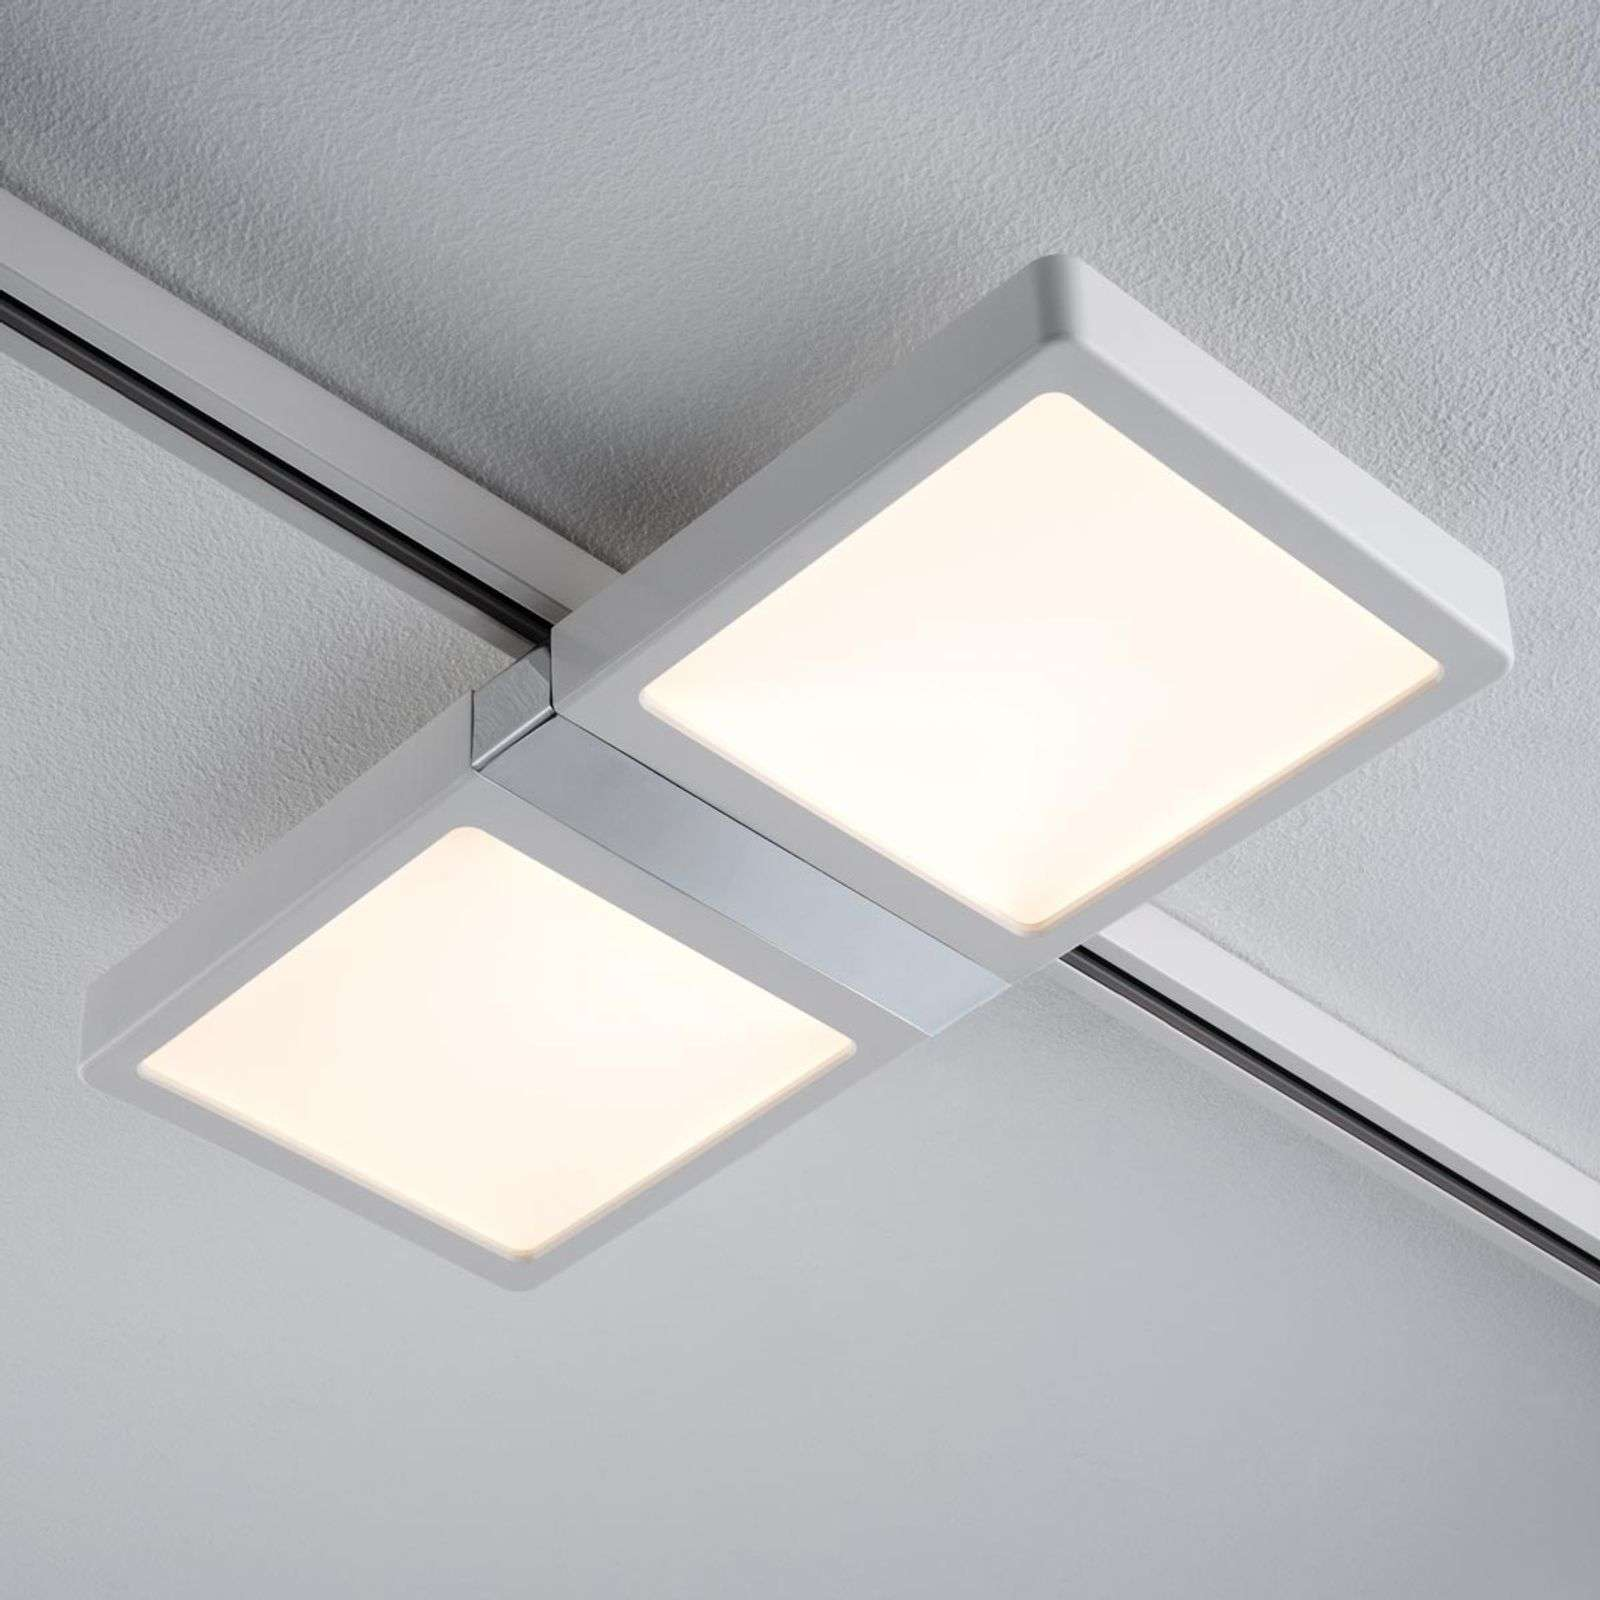 Panel LED Double blanco p. riel en U-1.